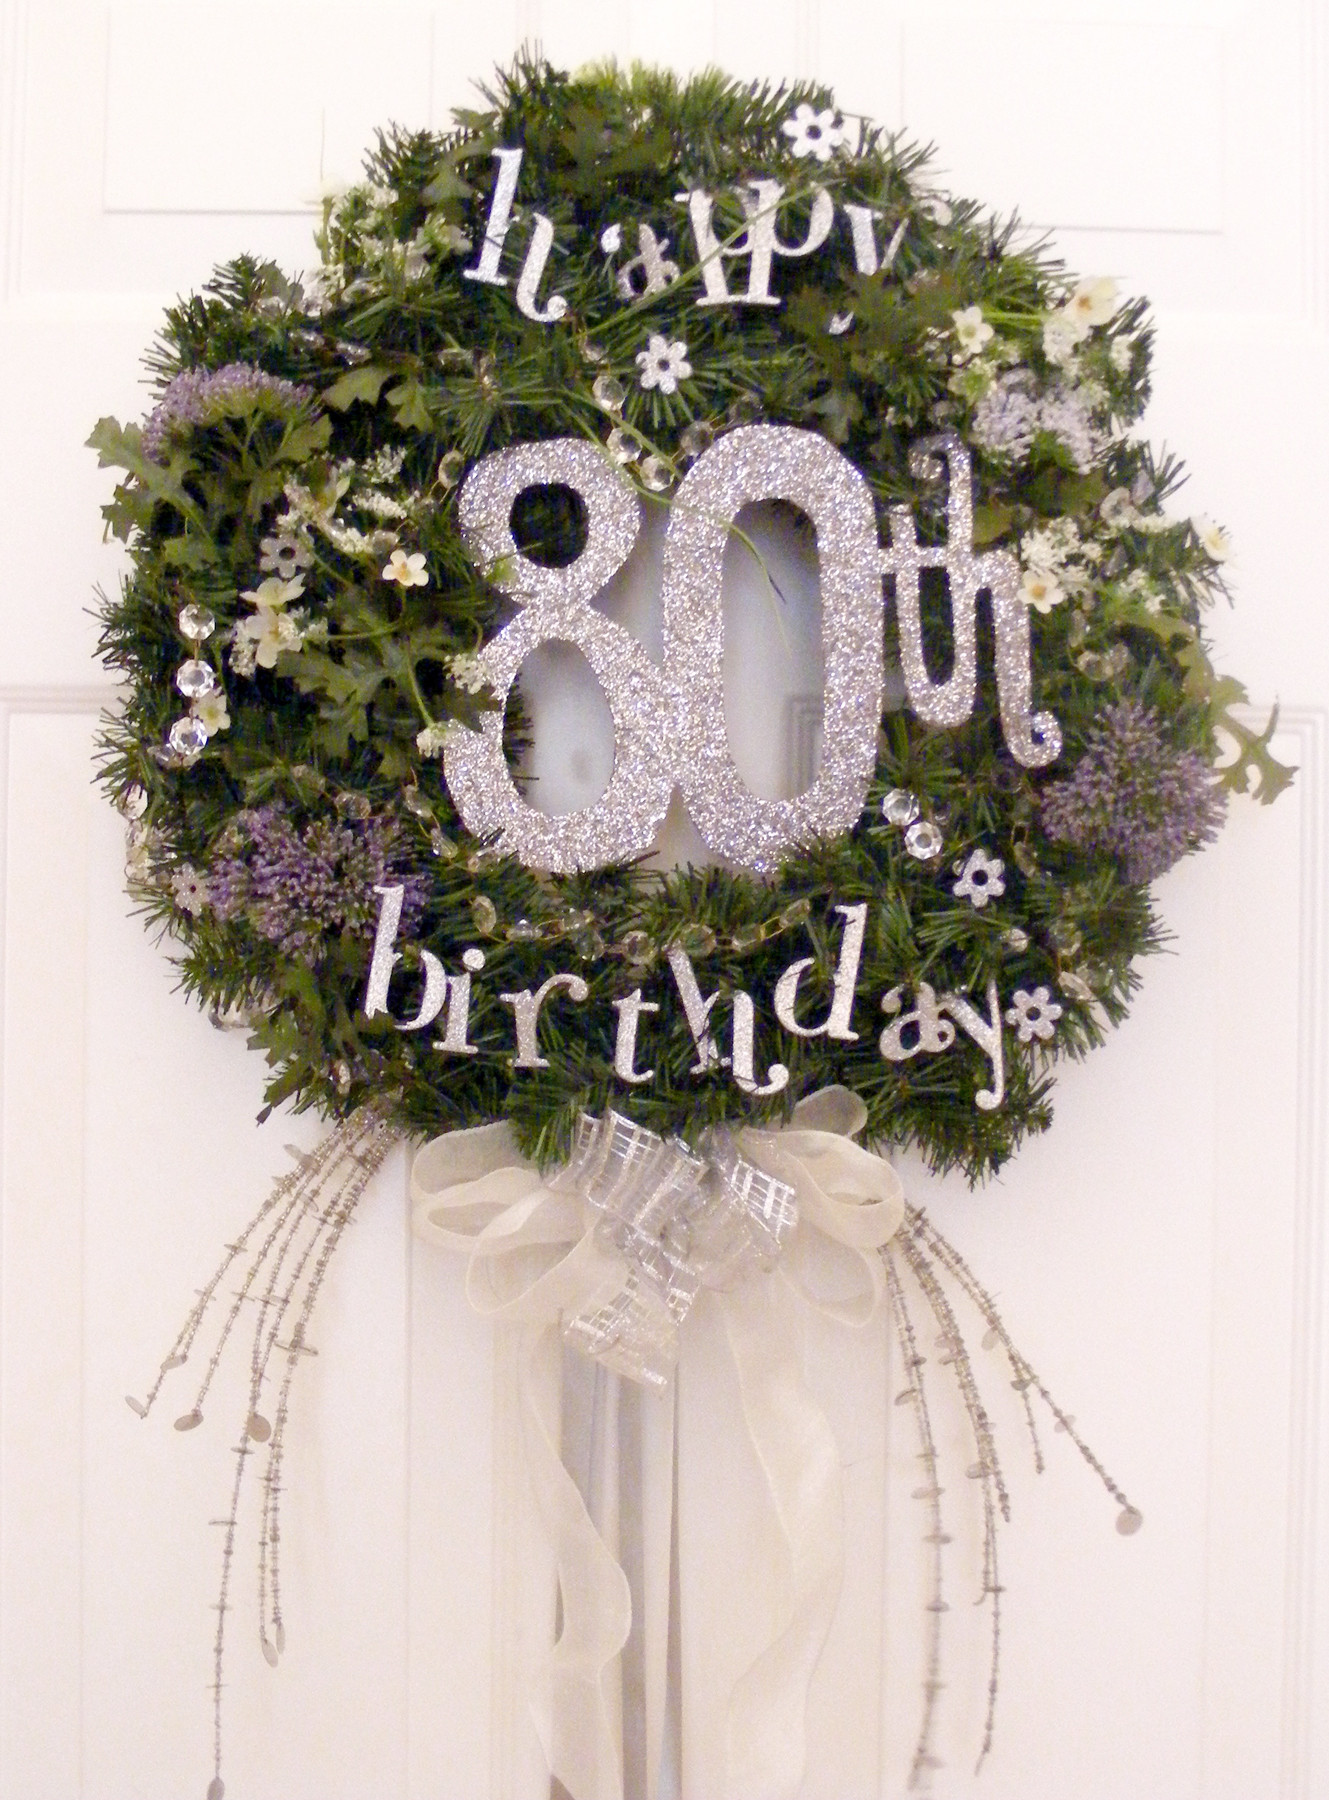 Best ideas about 80th Birthday Decorations . Save or Pin Dad's 80th Birthday Party Now.